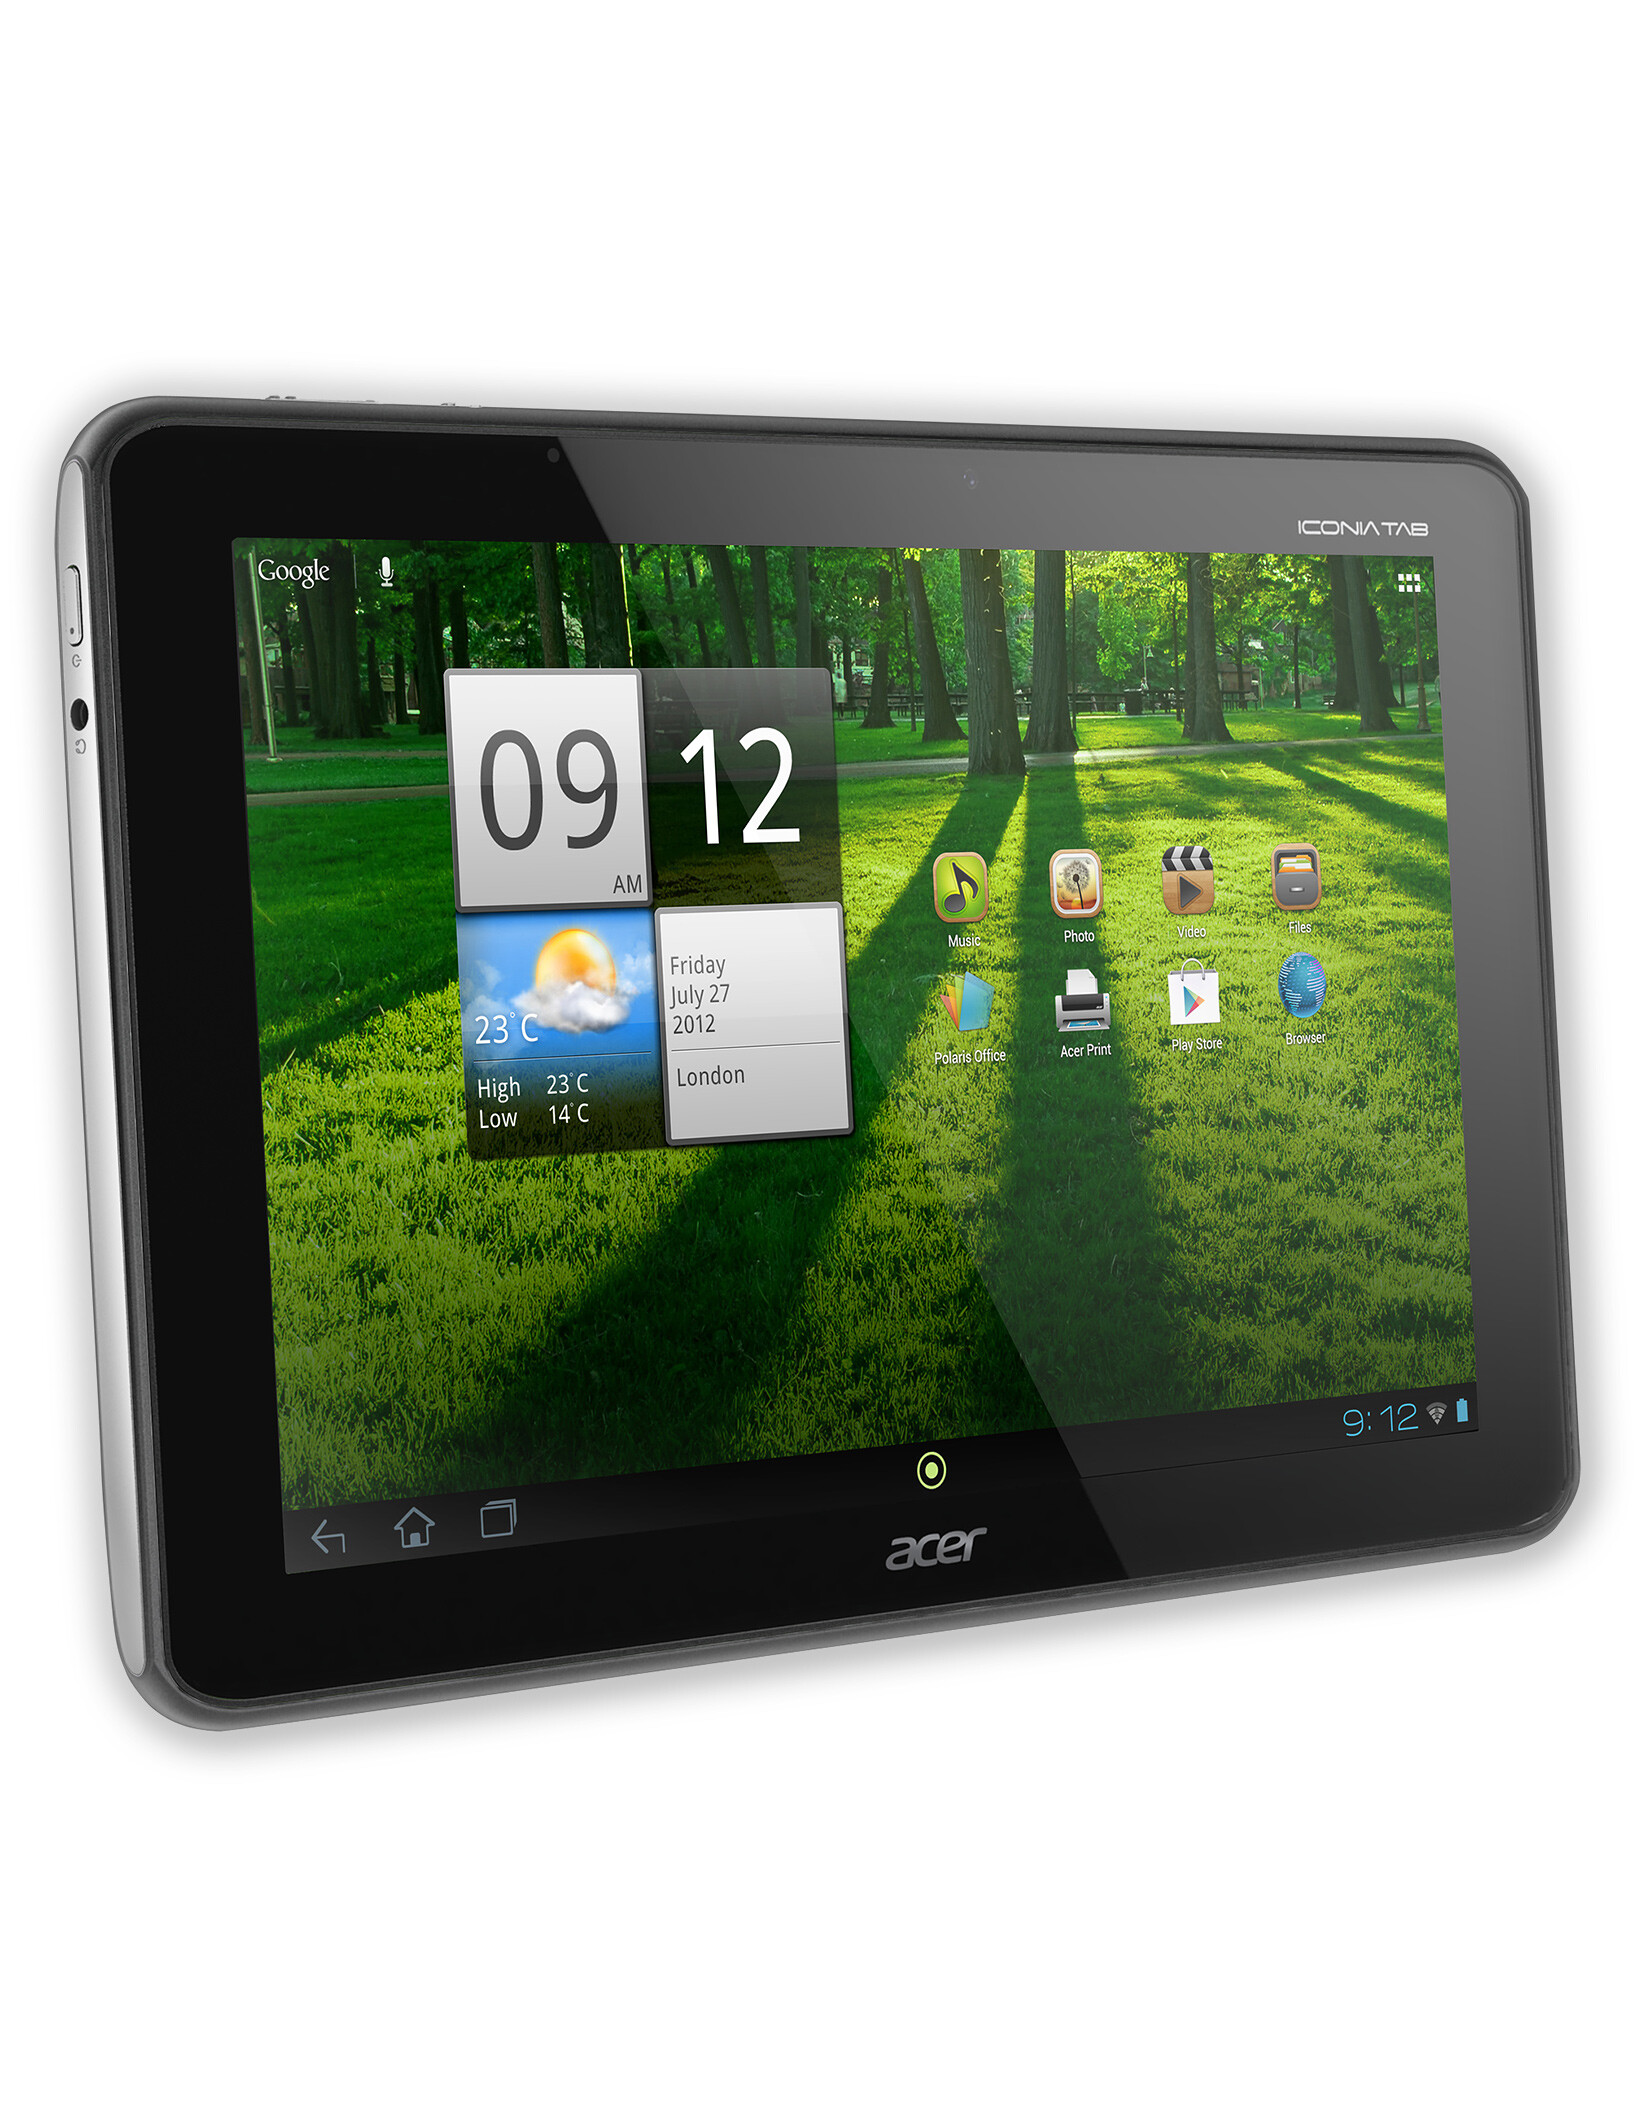 Acer Iconia Tab A700 full specs